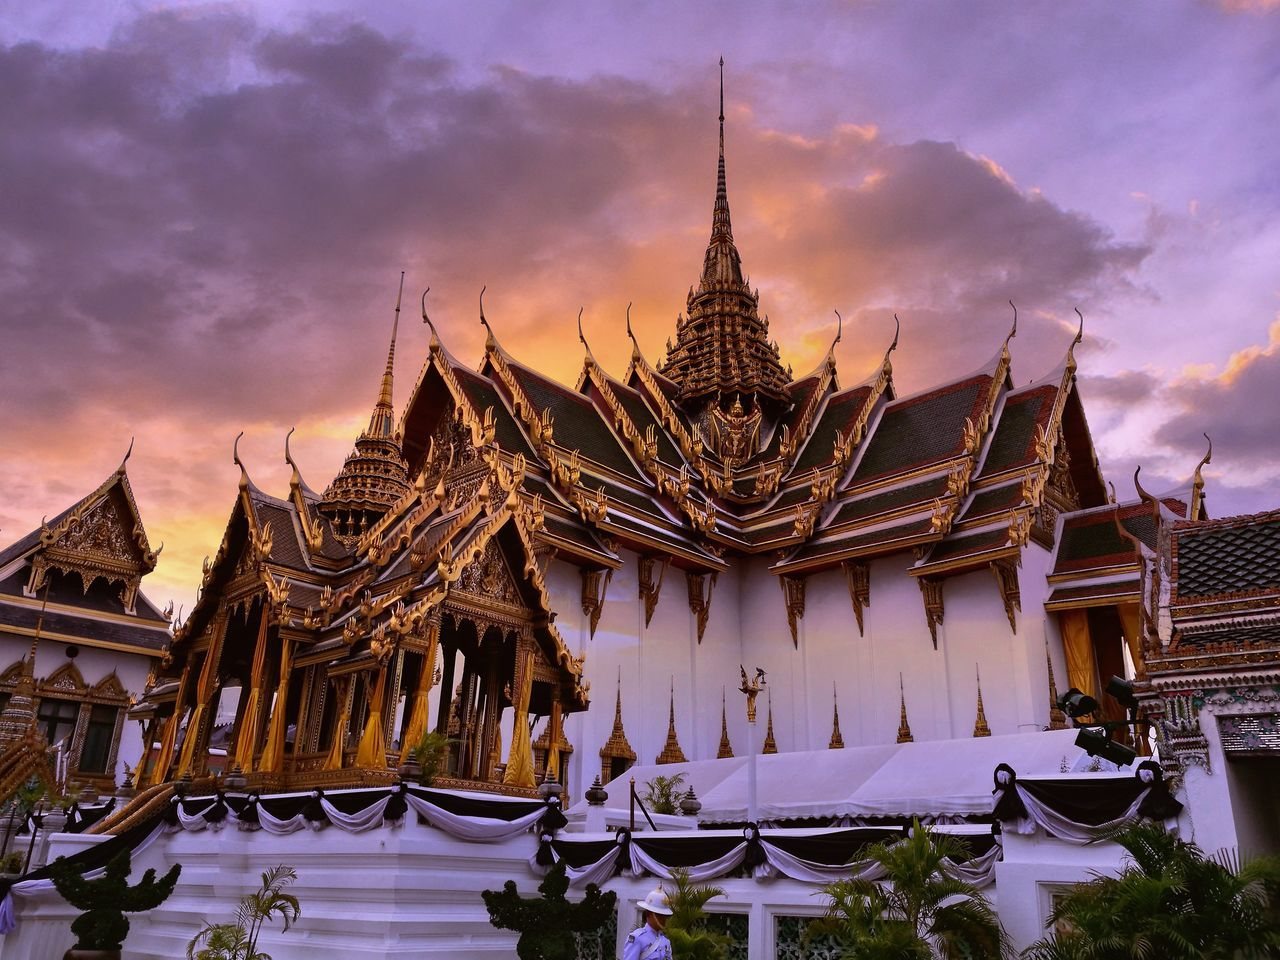 Abstract Architecture Temple Grand Palace Bangkok Thailand First Eyeem Photo